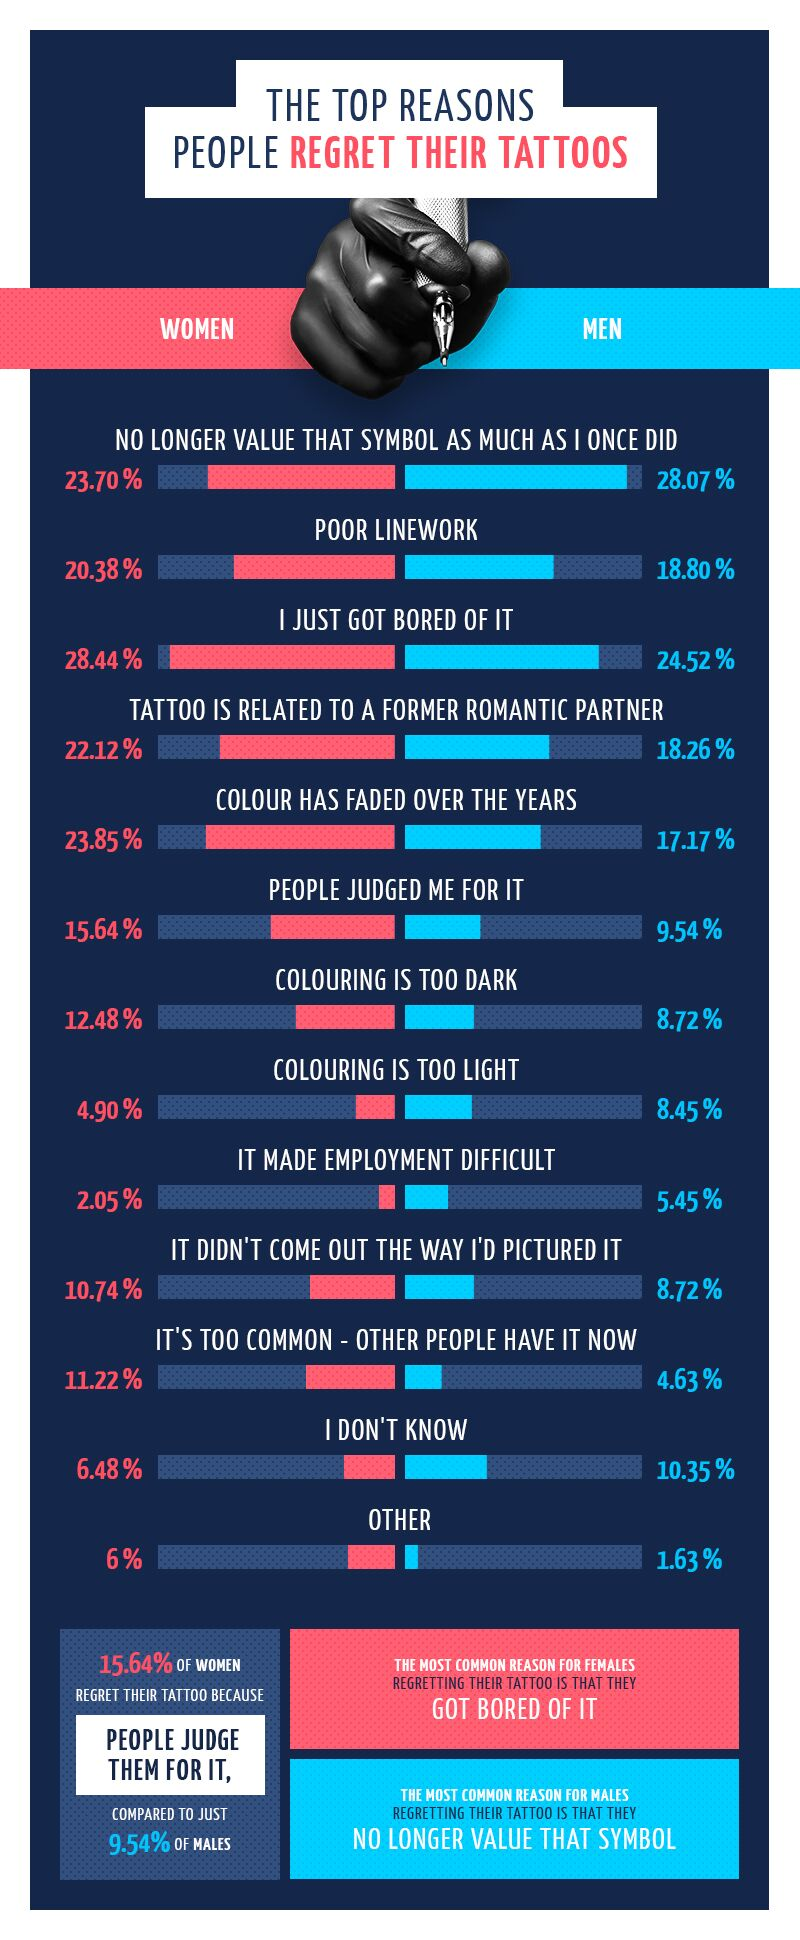 The top reasons people regret their tattoos